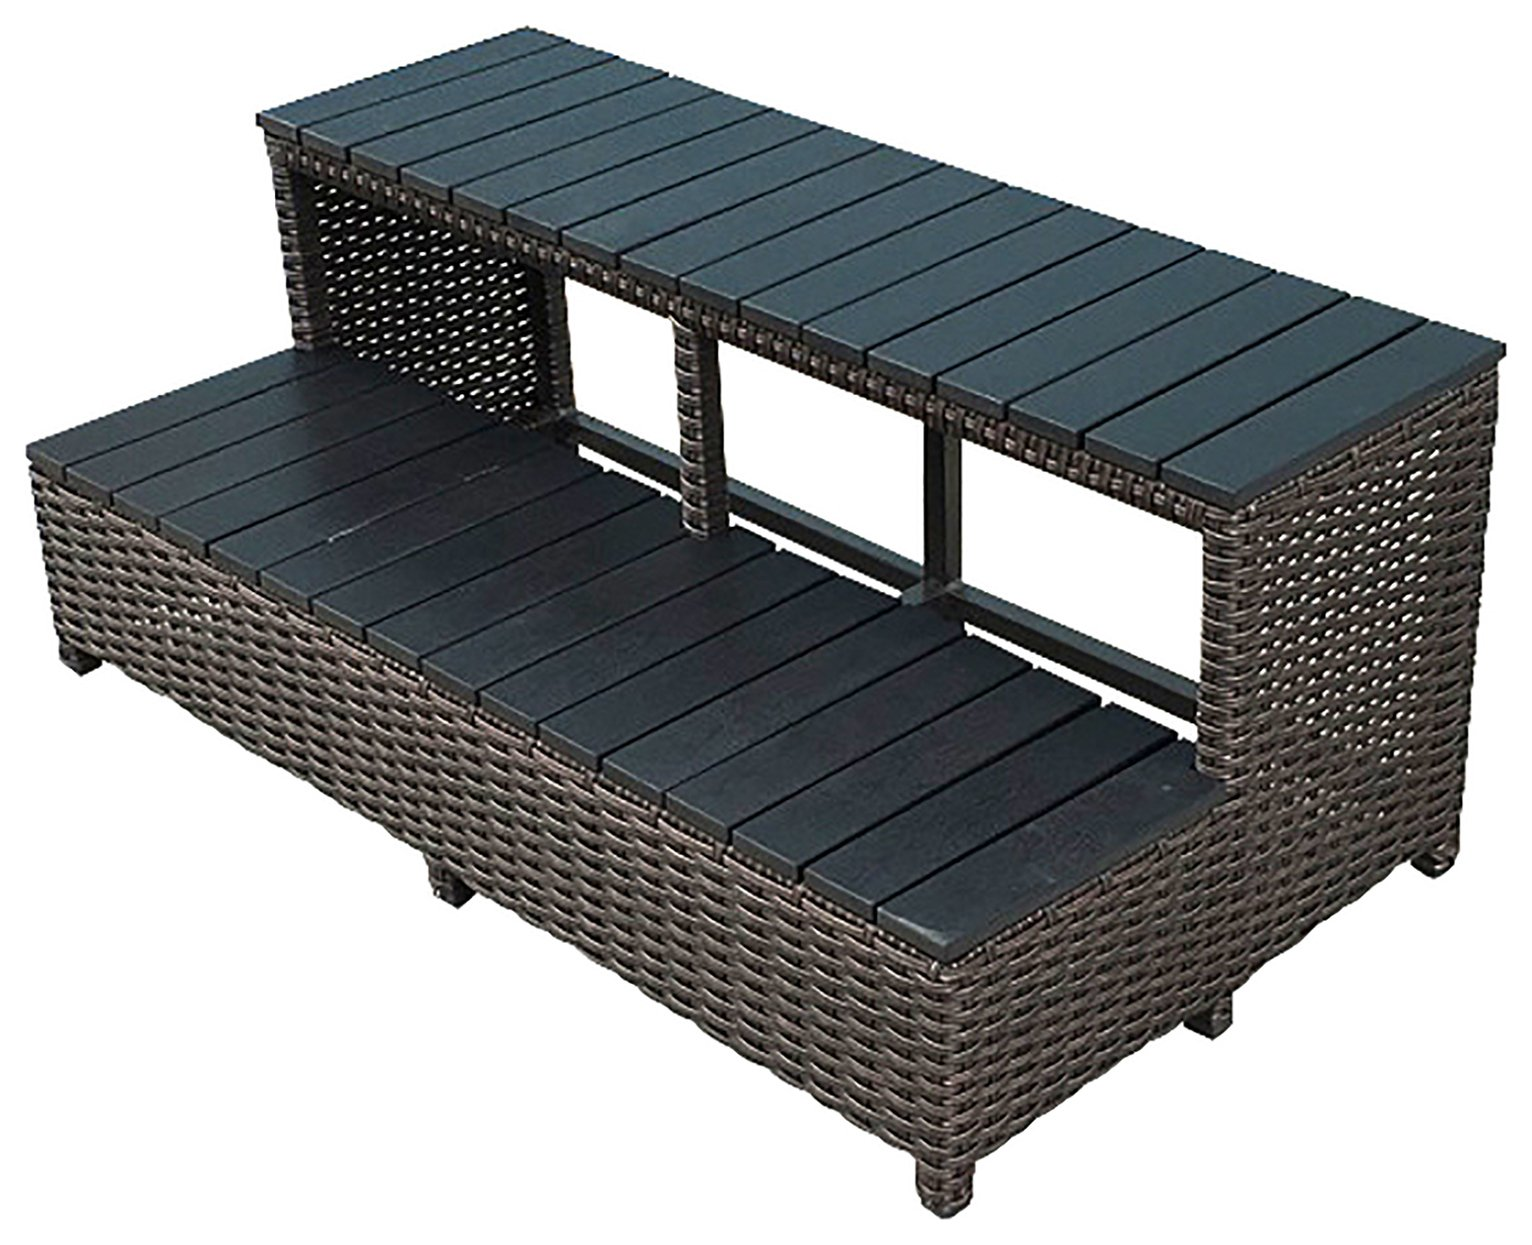 Canadian Spa Wicker Spa Steps 84 inch at Argos review